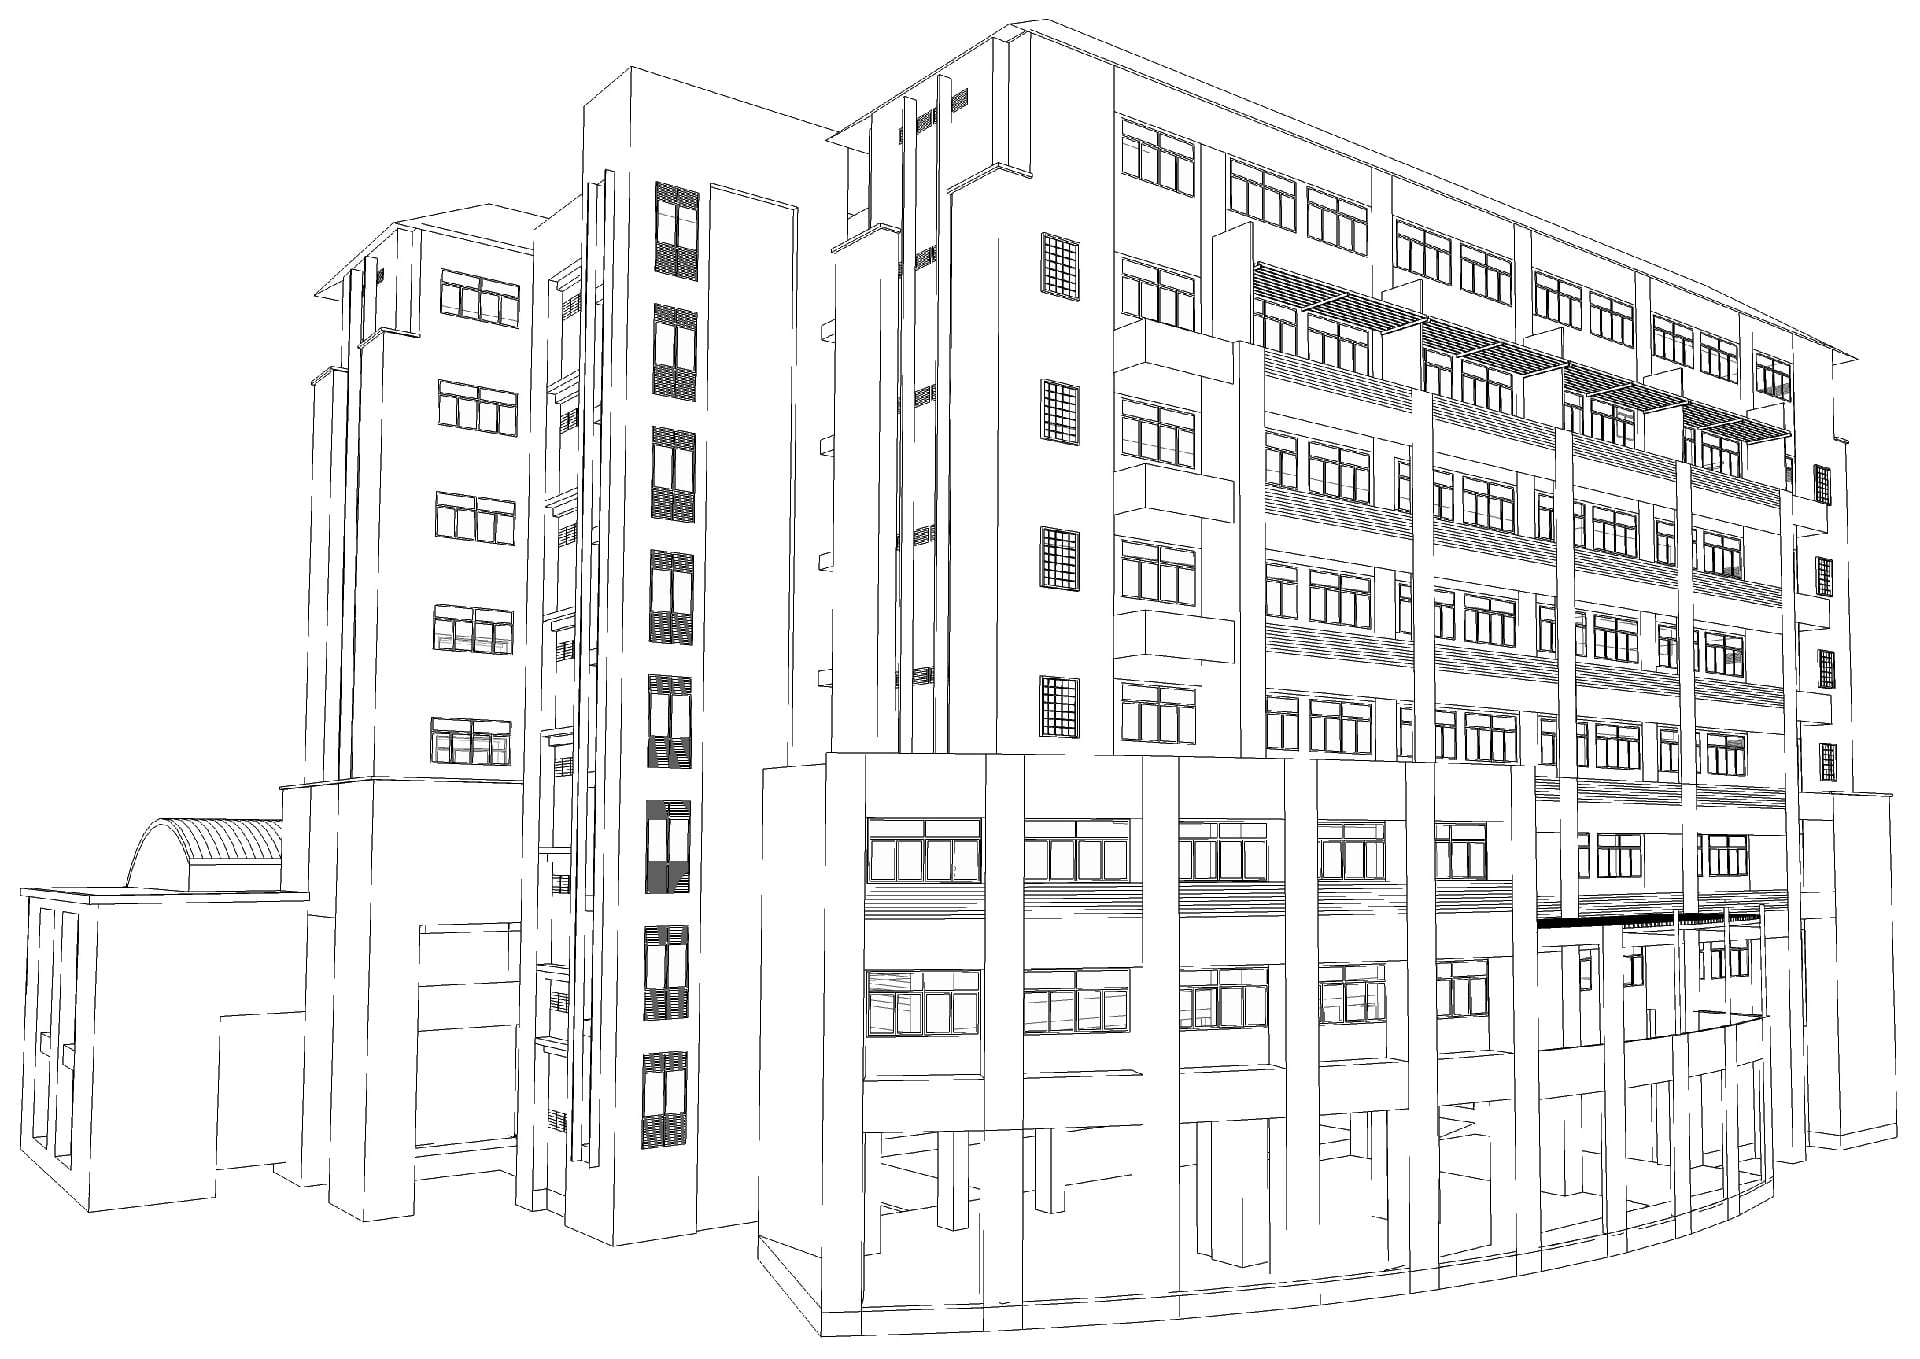 Wireframe sketch of a commercial building.